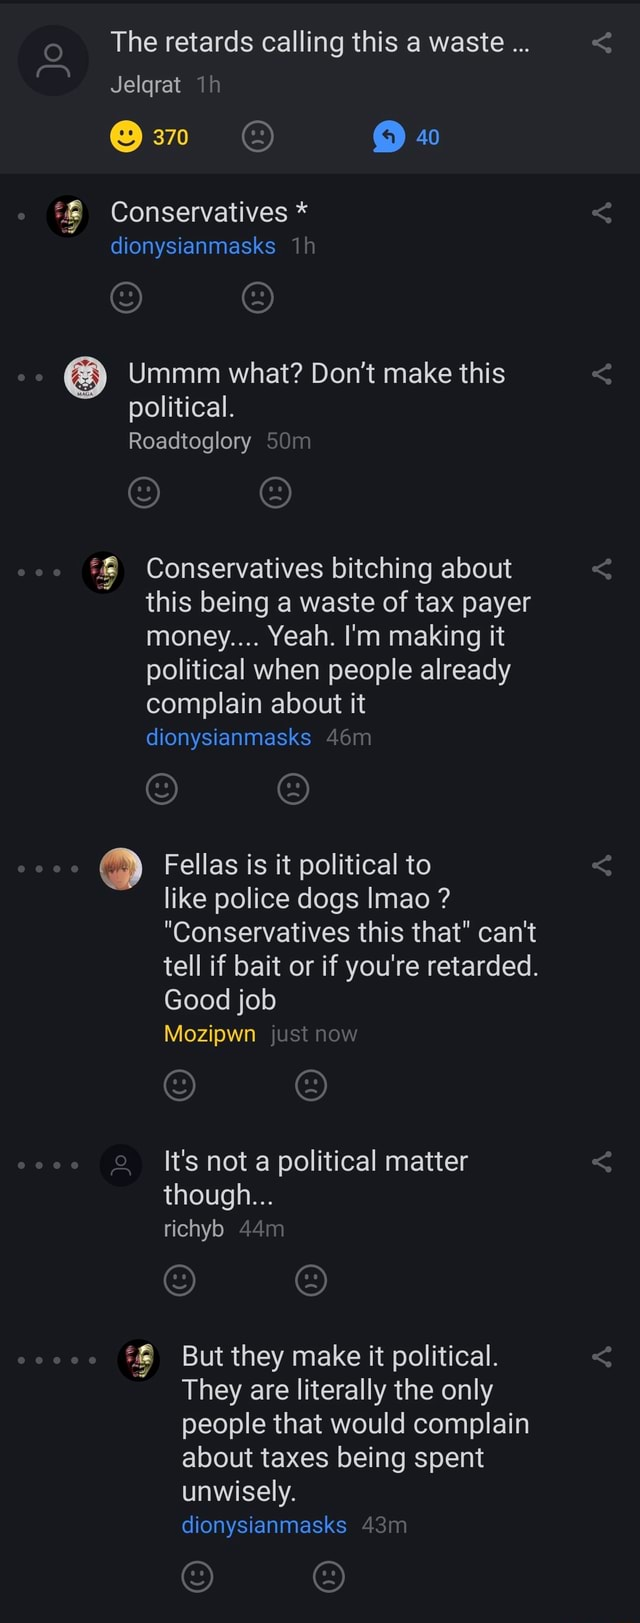 The retards calling this a waste Jelgrat 40 Conservatives * dionysianmasks Ummm what Do not make this political. Roadtoglory Conservatives bitching about this being a waste of tax payer money Yeah. I'm making it political when people already complain about it dionysianmasks Fellas is it political to like police dogs Imao  Conservatives this that can not tell if bait or if you're retarded. Good job Mozipwn It's not a political matter though richyb But they make it political. They are literally the only people that would complain about taxes being spent unwisely. dionysianmasks memes